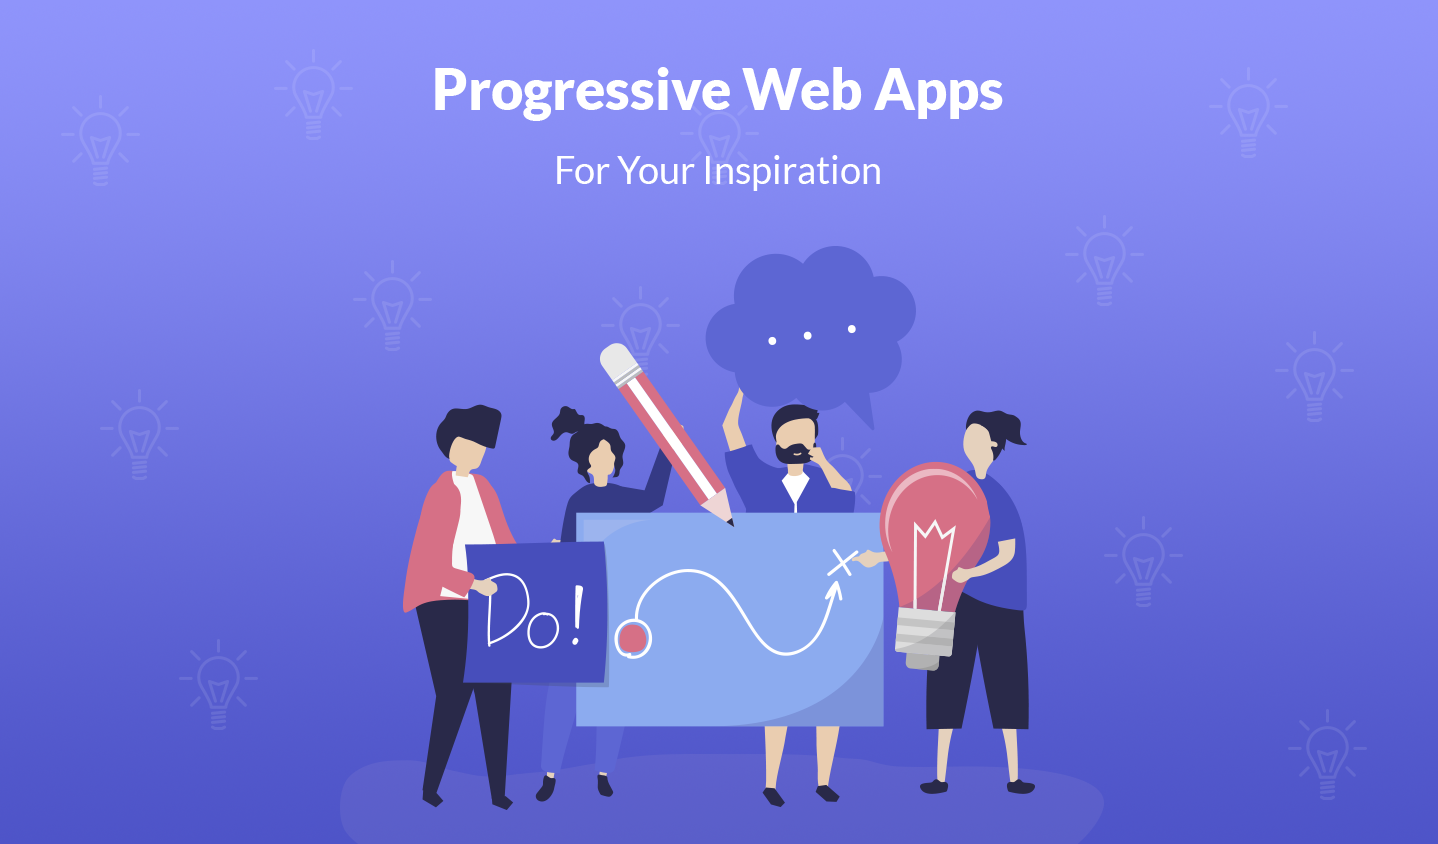 Top 10 Progressive Web Apps for Your Inspiration